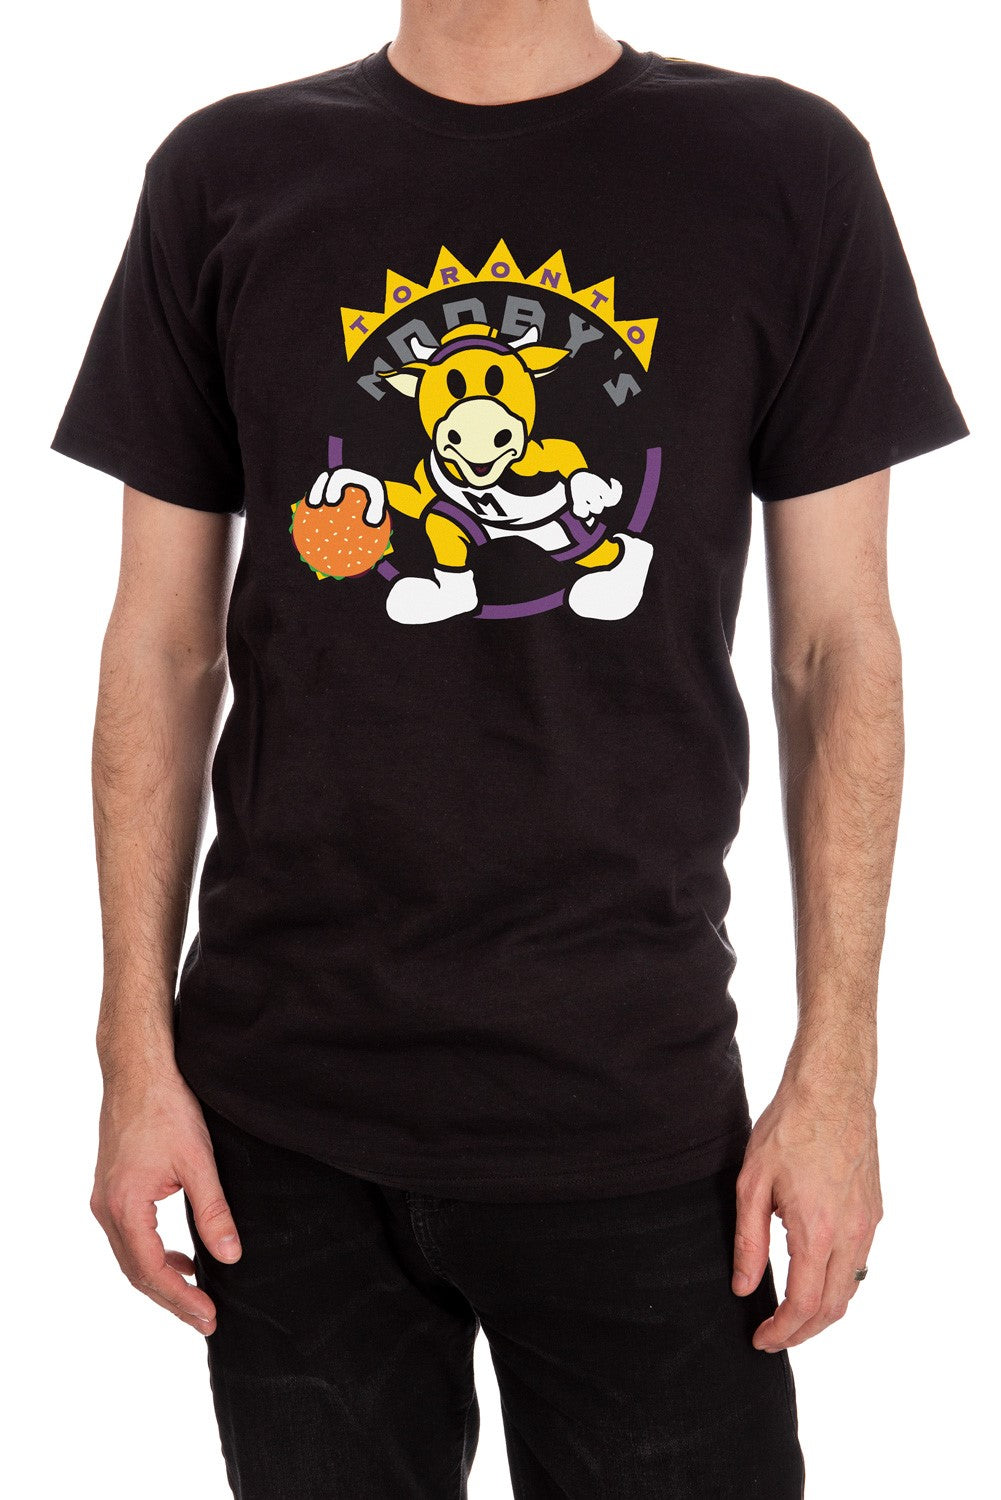 Limited Edition Mooby's Toronto Raptors Parody T-Shirt - Jay and Silent Bob